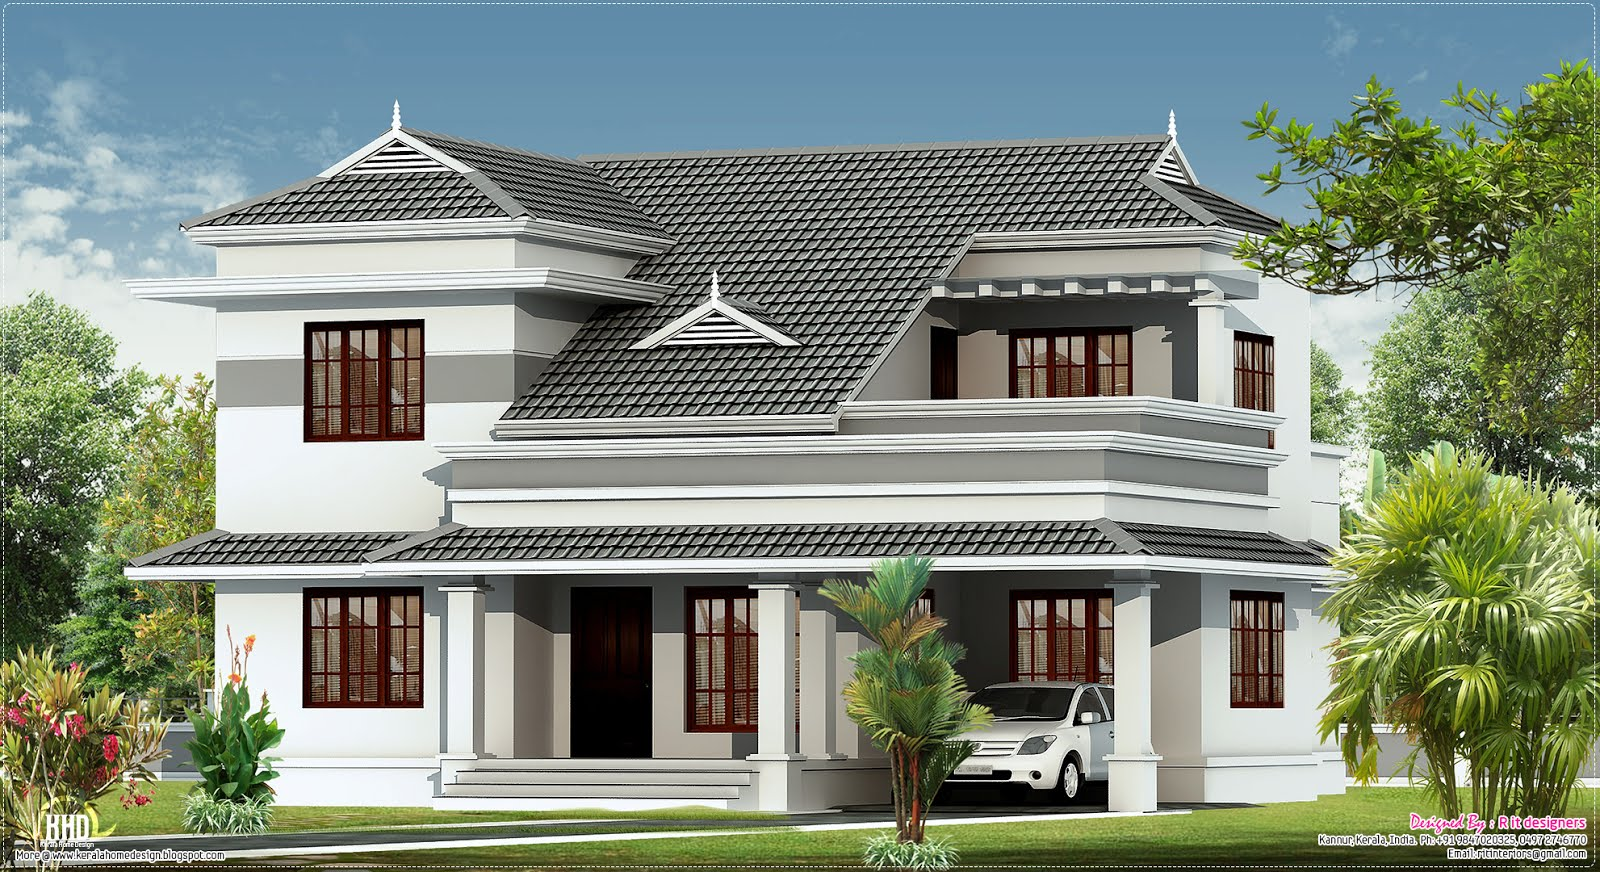 New villa design in 2250 kerala home design and for New home designs pictures